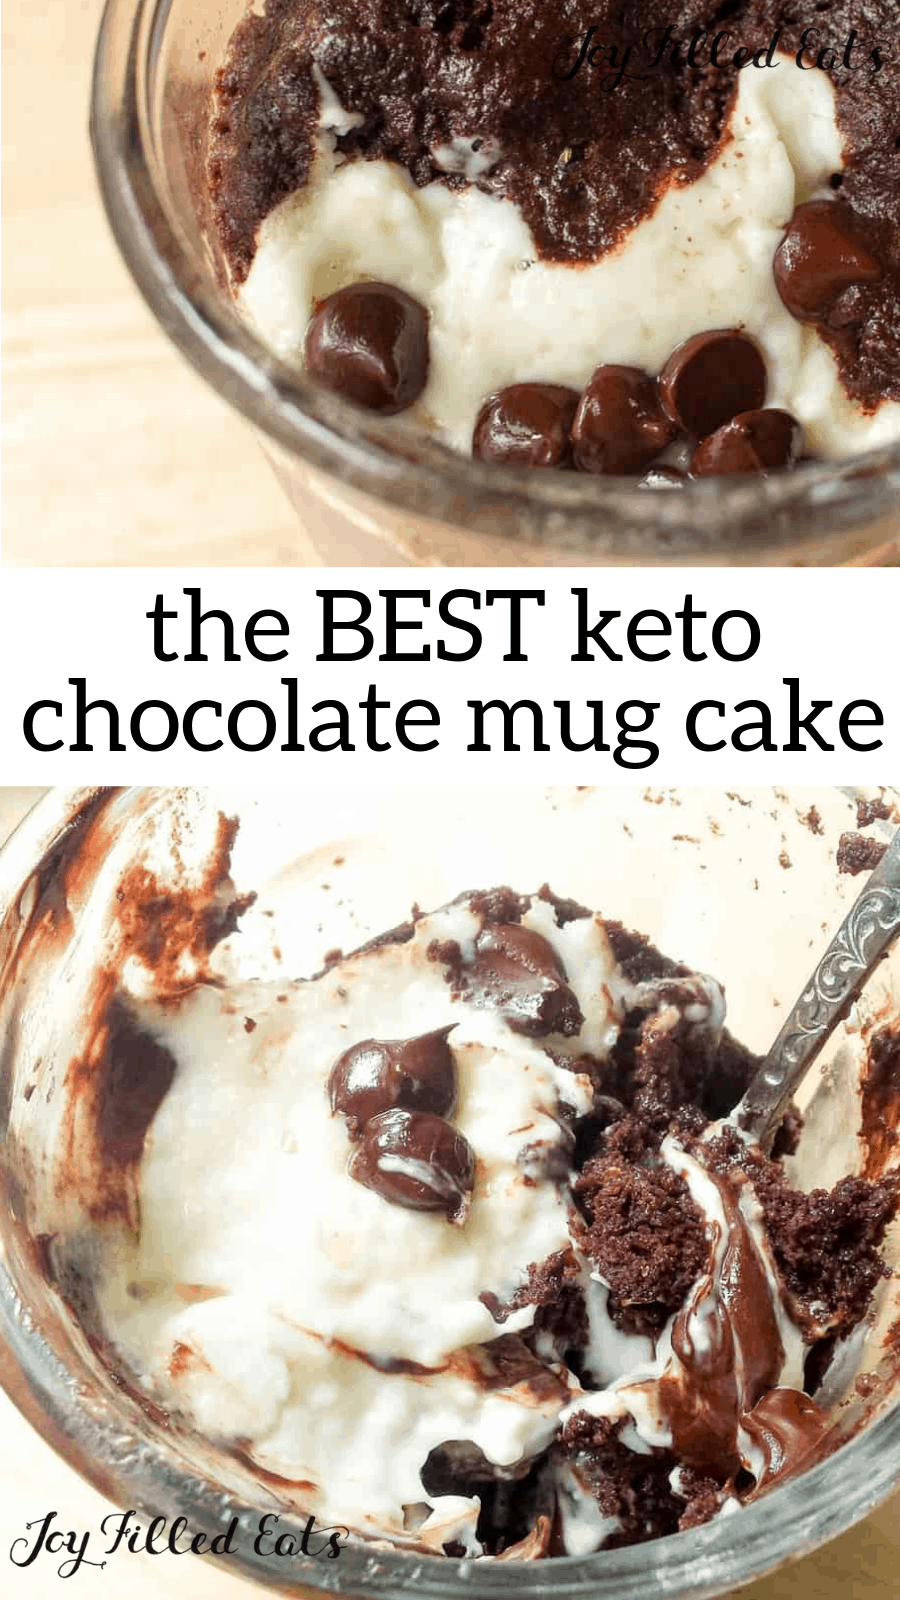 Single Serve Keto Mug Cake Low Carb, Grain-Free, Gluten-Free, Sugar-Free, THM S, Fast, Easy - Warm chocolate cake plus a creamy cheesecake topping and melty chocolate chips My Single Serve Keto Mug Cake tastes like heaven and is ready in about five minutes.